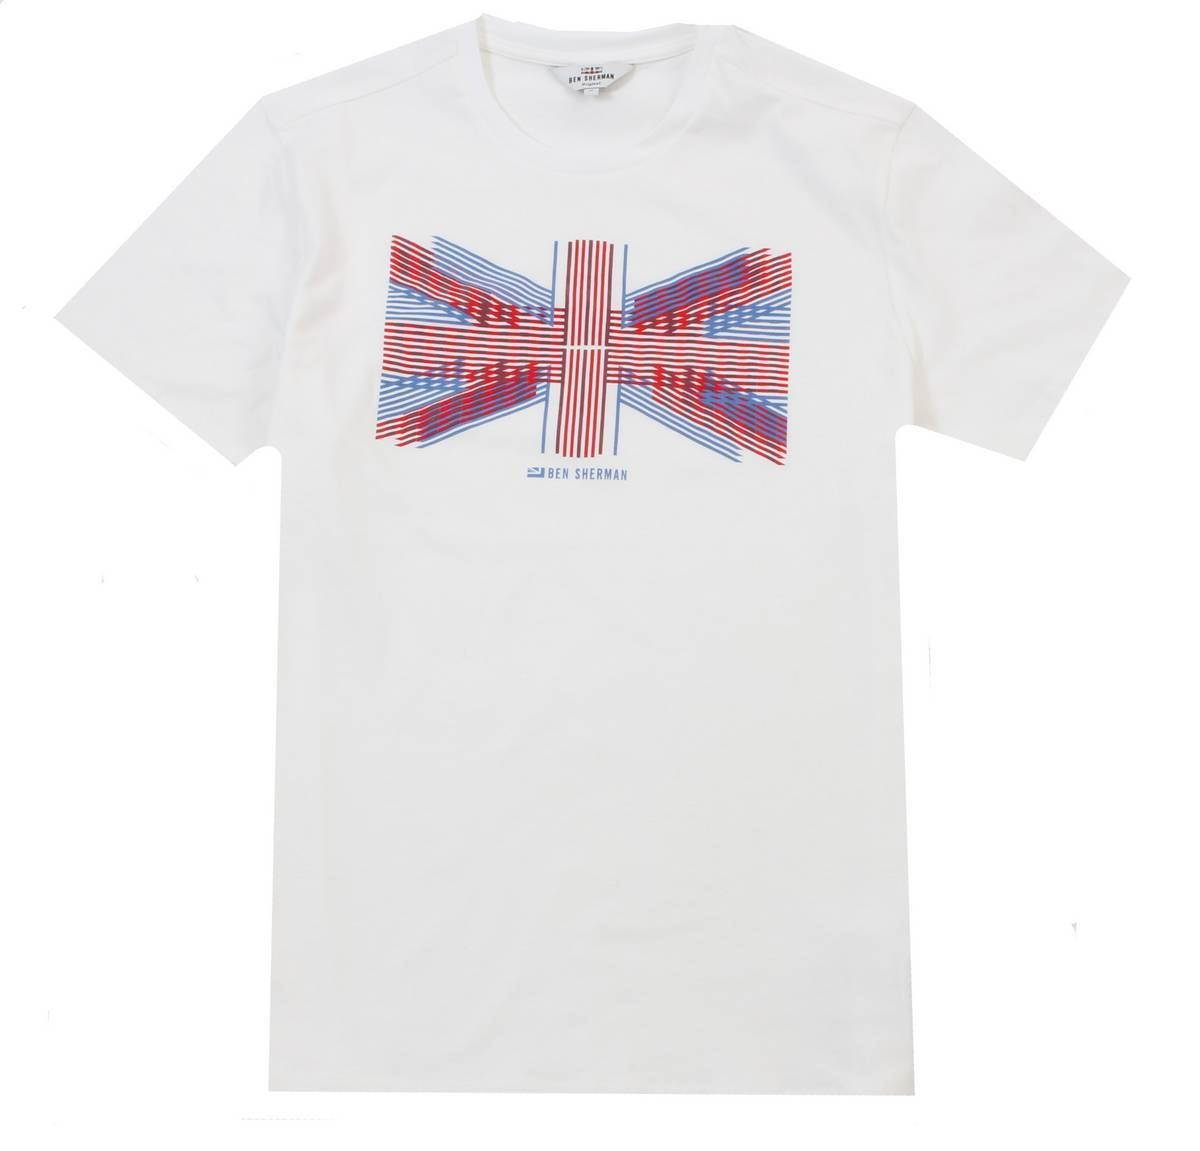 5ee34ea0f Ben Sherman Mens Union Lines T-Shirt - White/Blue/Red | eBay